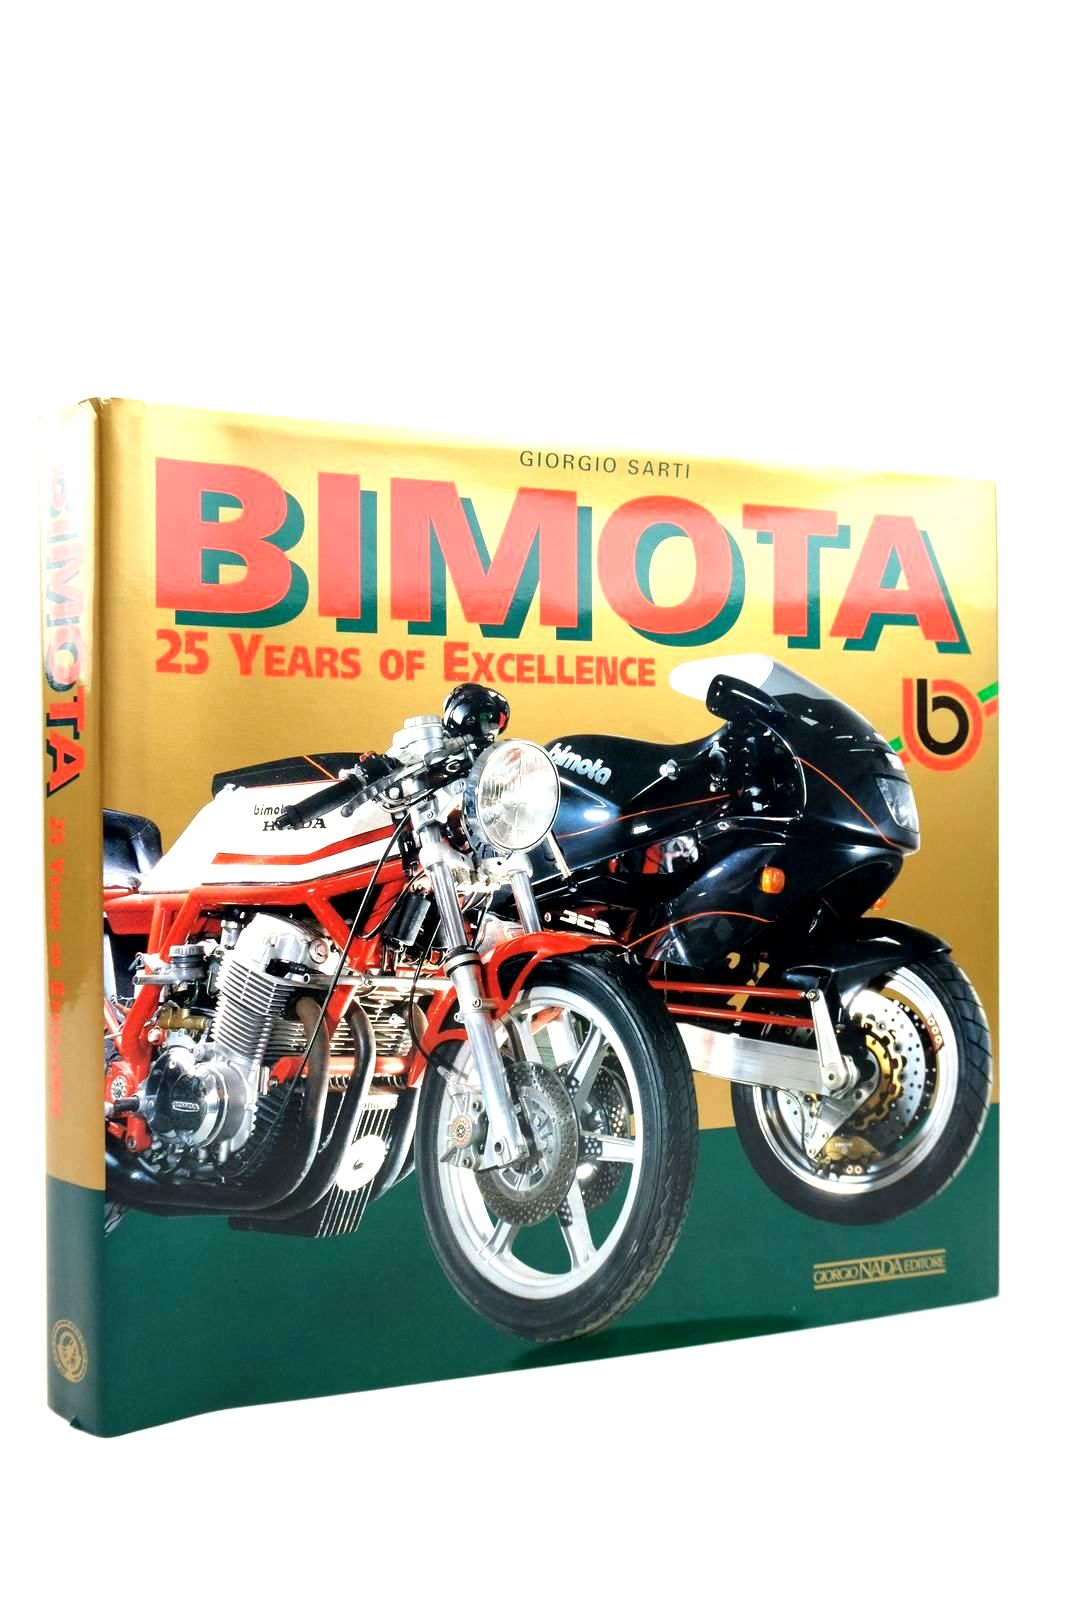 Photo of BIMOTA: 25 YEARS OF EXCELLENCE written by Sarti, Giorgio published by Giorgio Nada Editore (STOCK CODE: 2135136)  for sale by Stella & Rose's Books